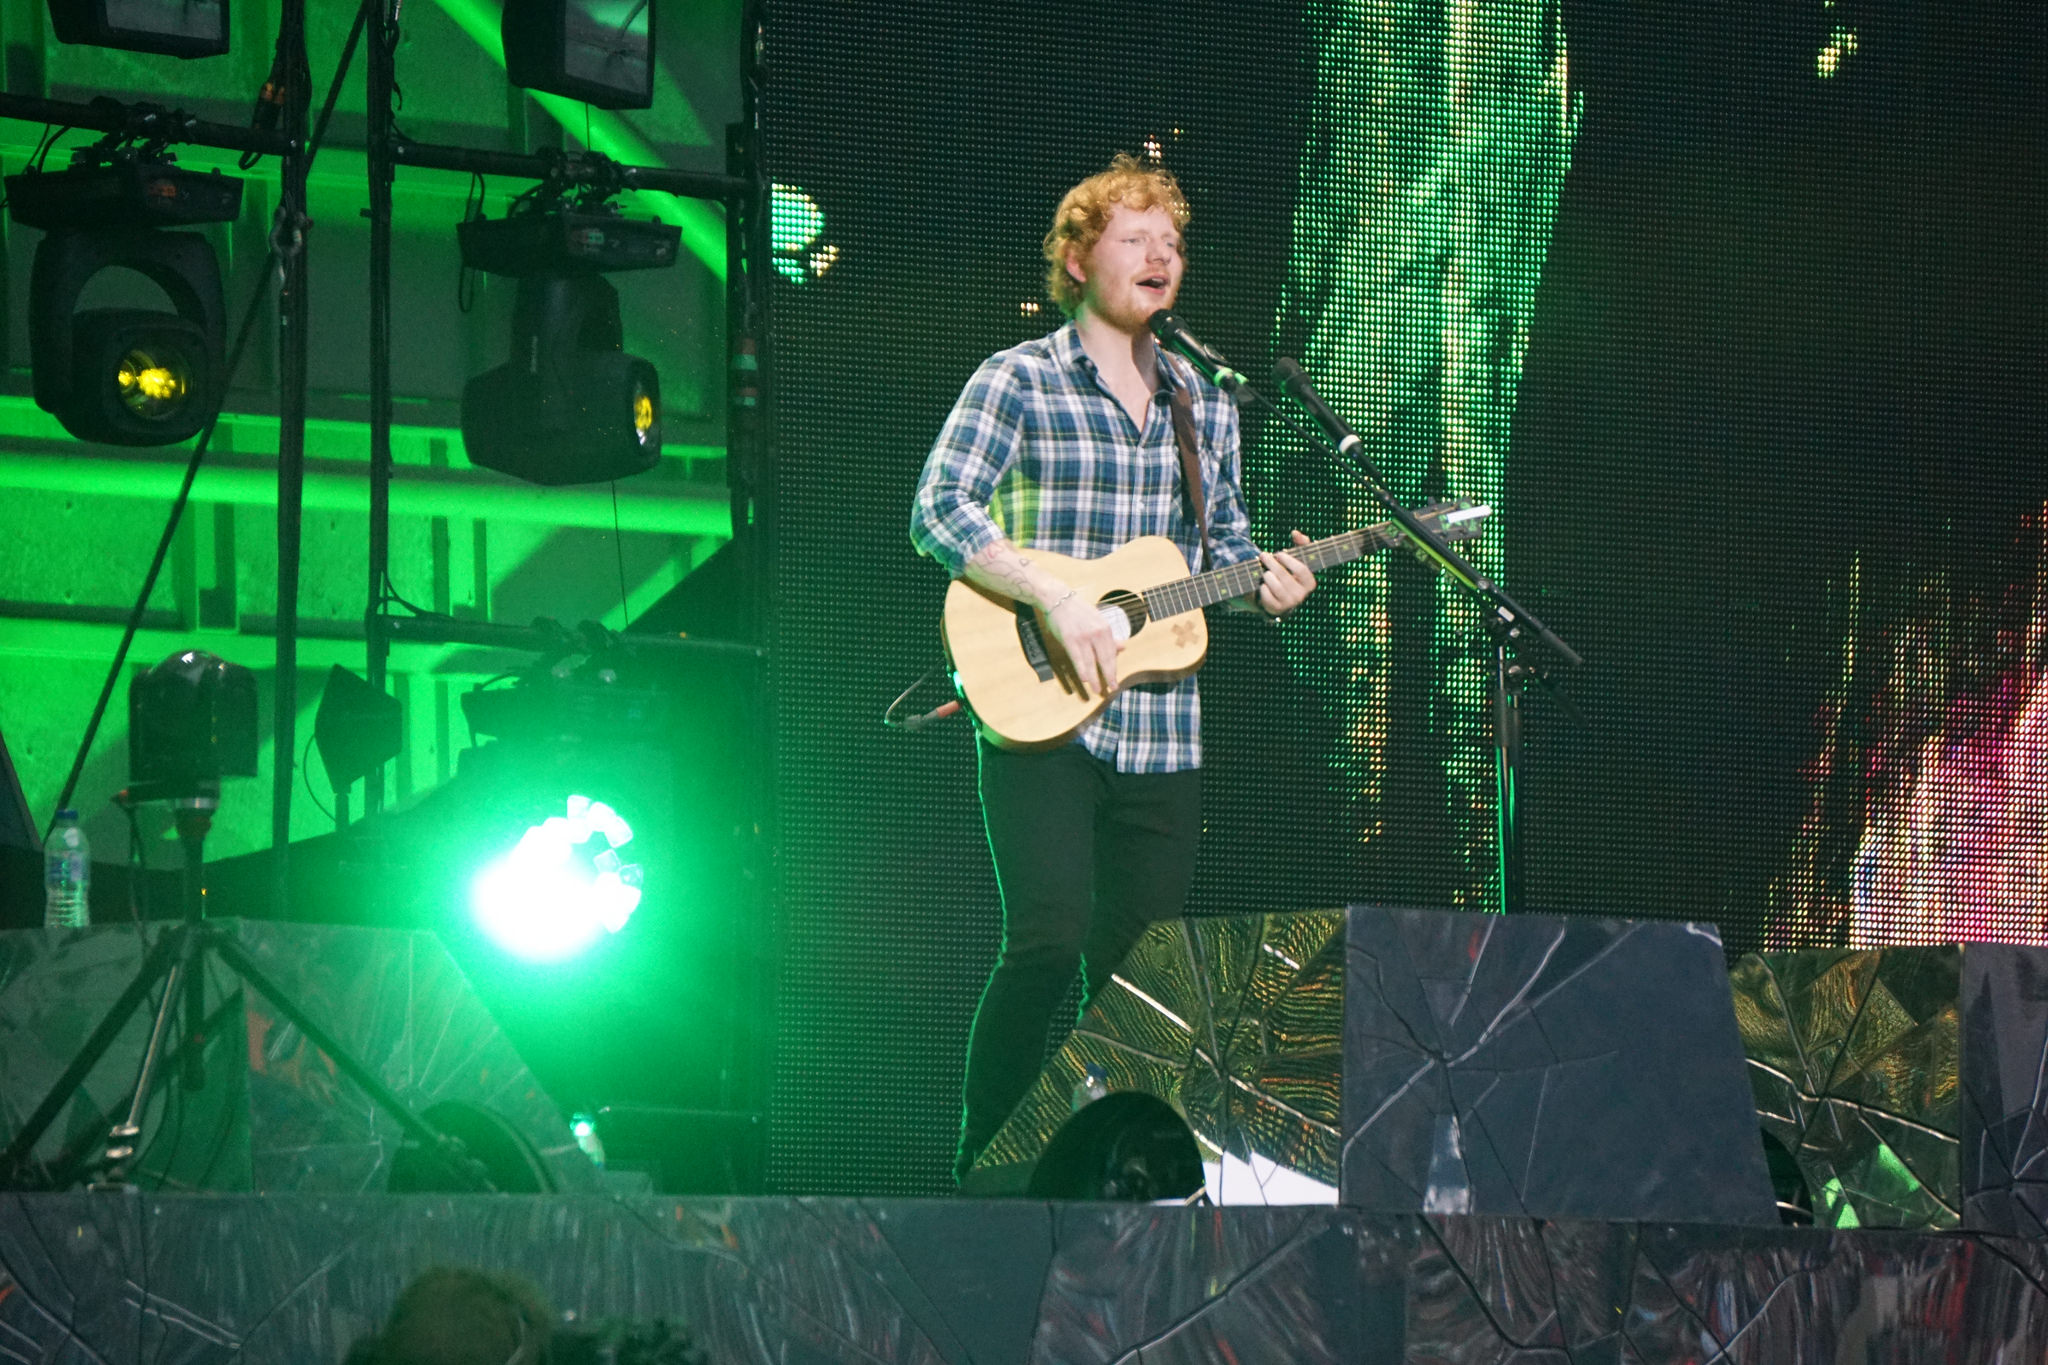 Ed Sheeran at Tuned Rocks Stream of the Day